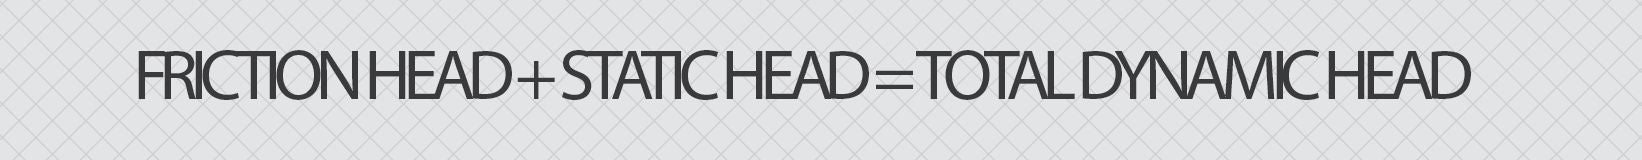 Friction Head plus Static Head equals Total Dynamic Head